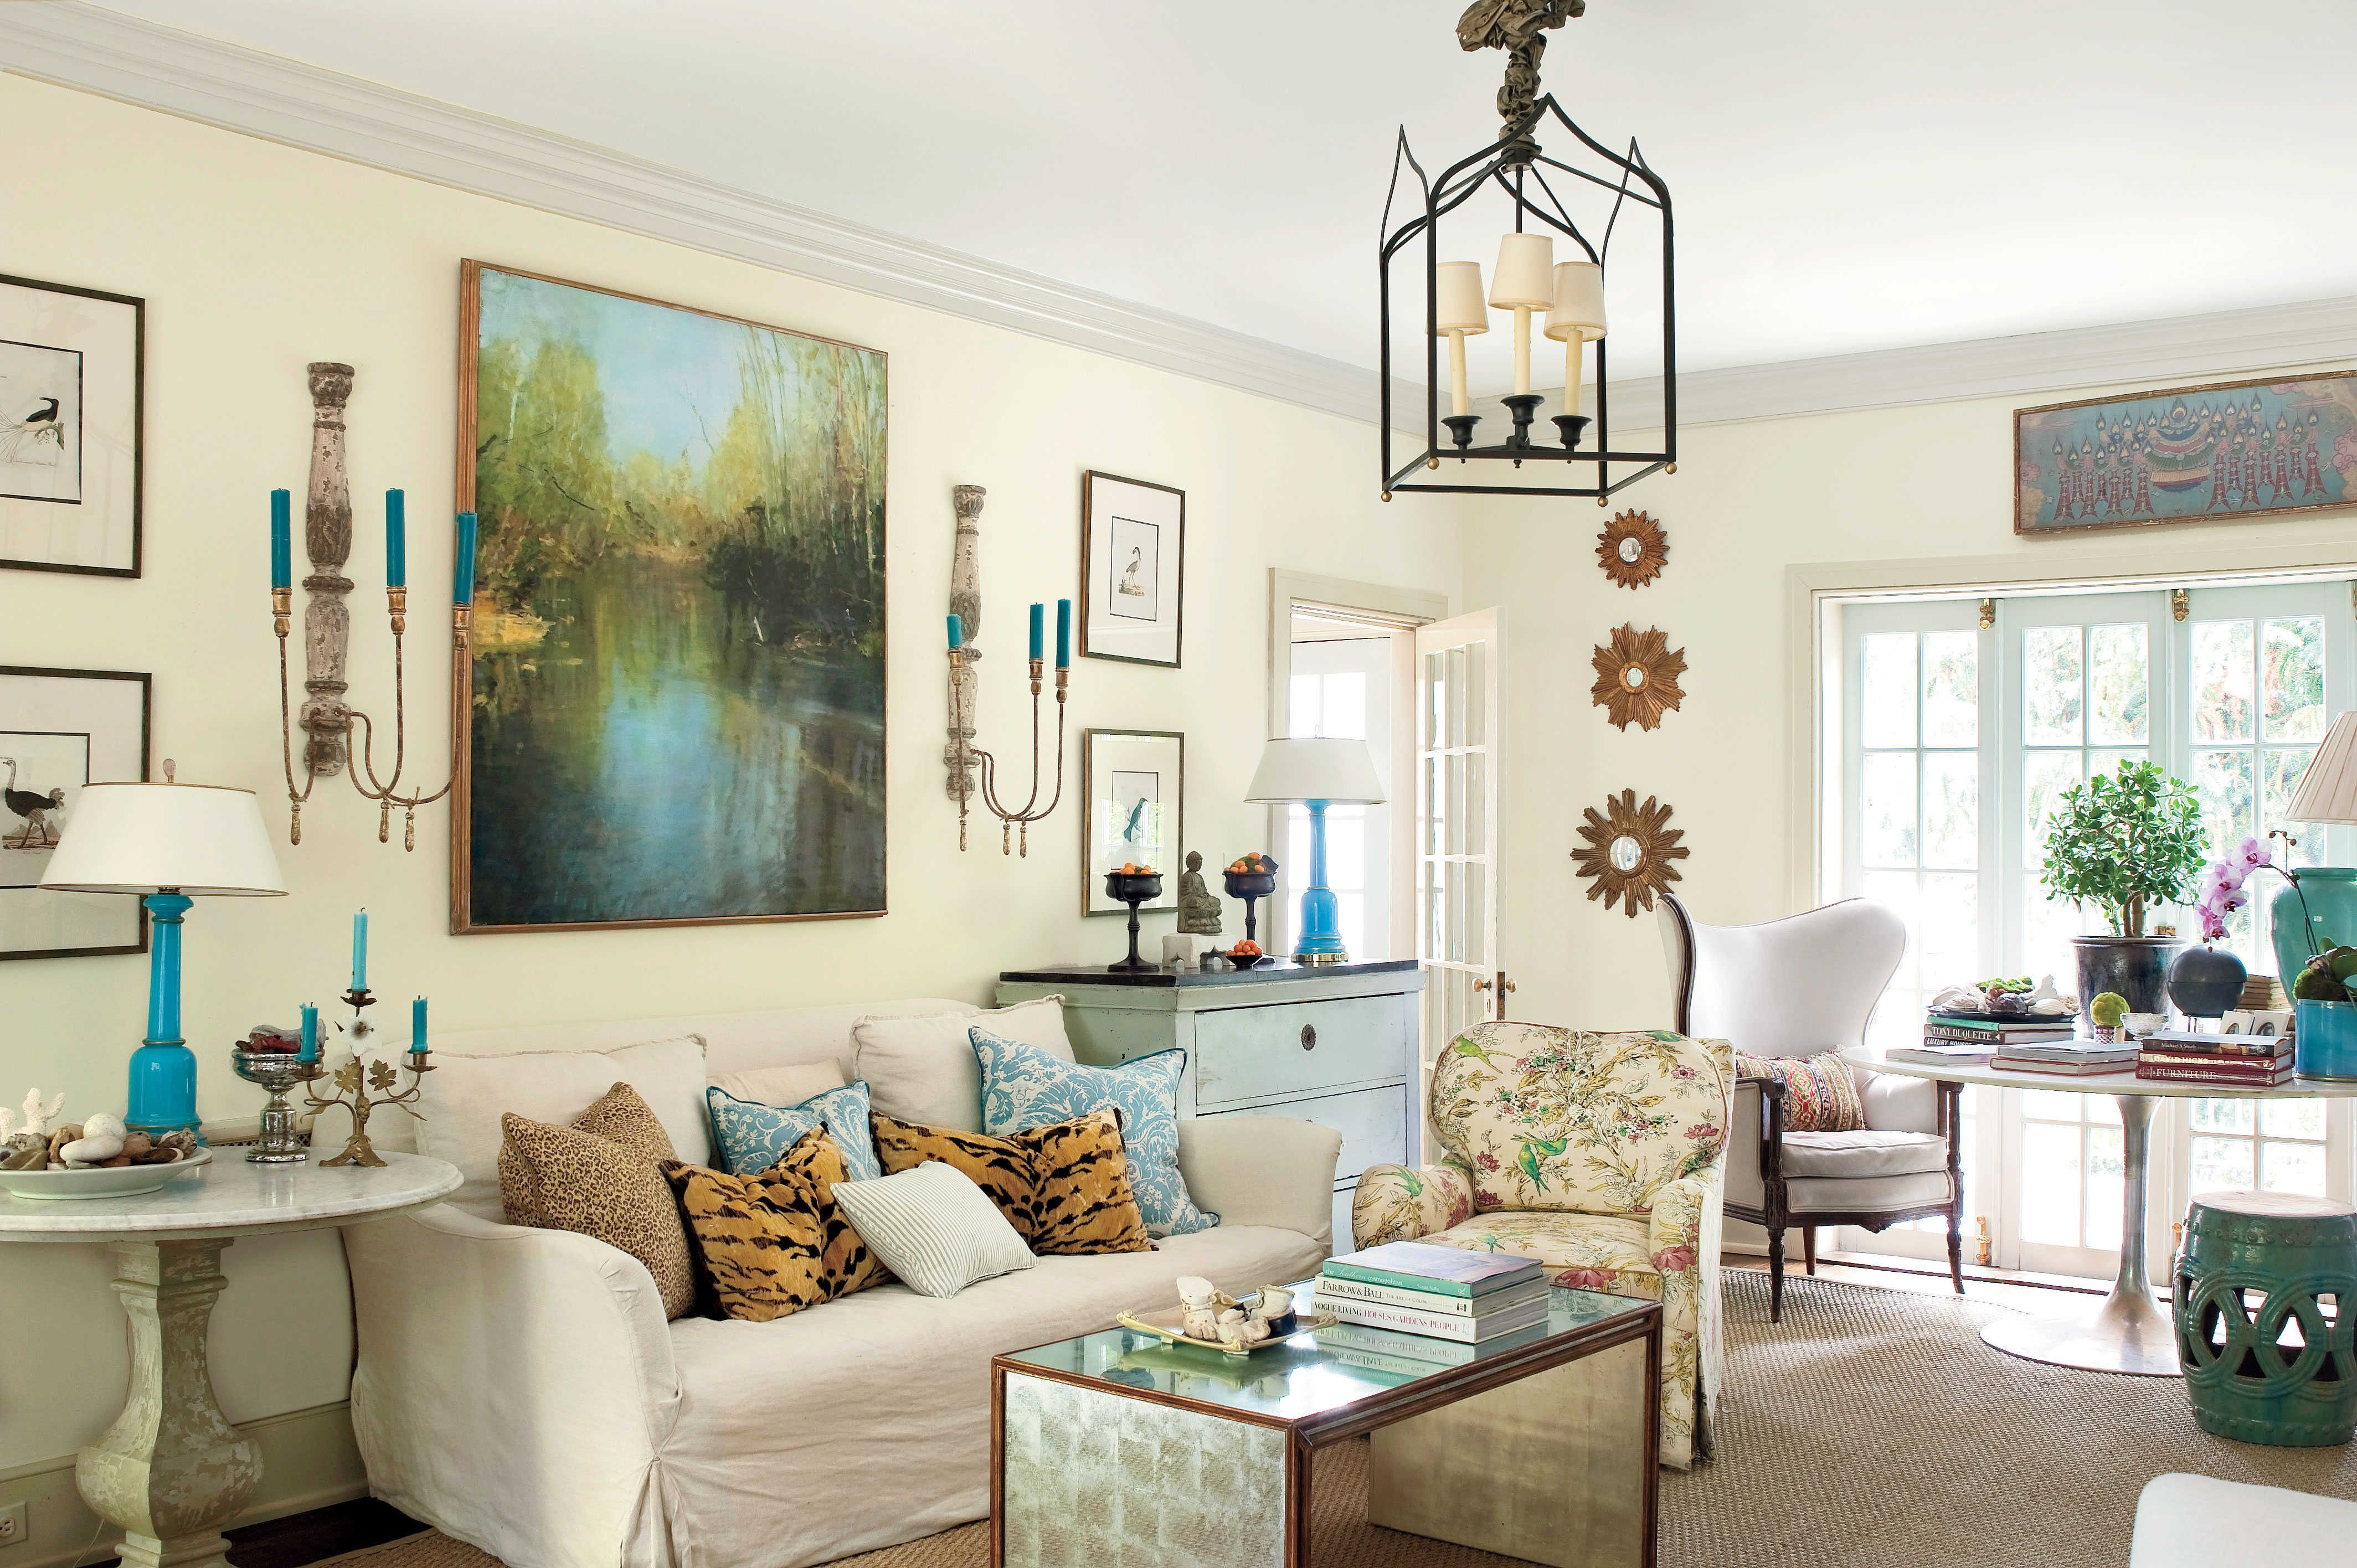 The 5 Dead Giveaways of a Southern Home | Southern, Living rooms and ...